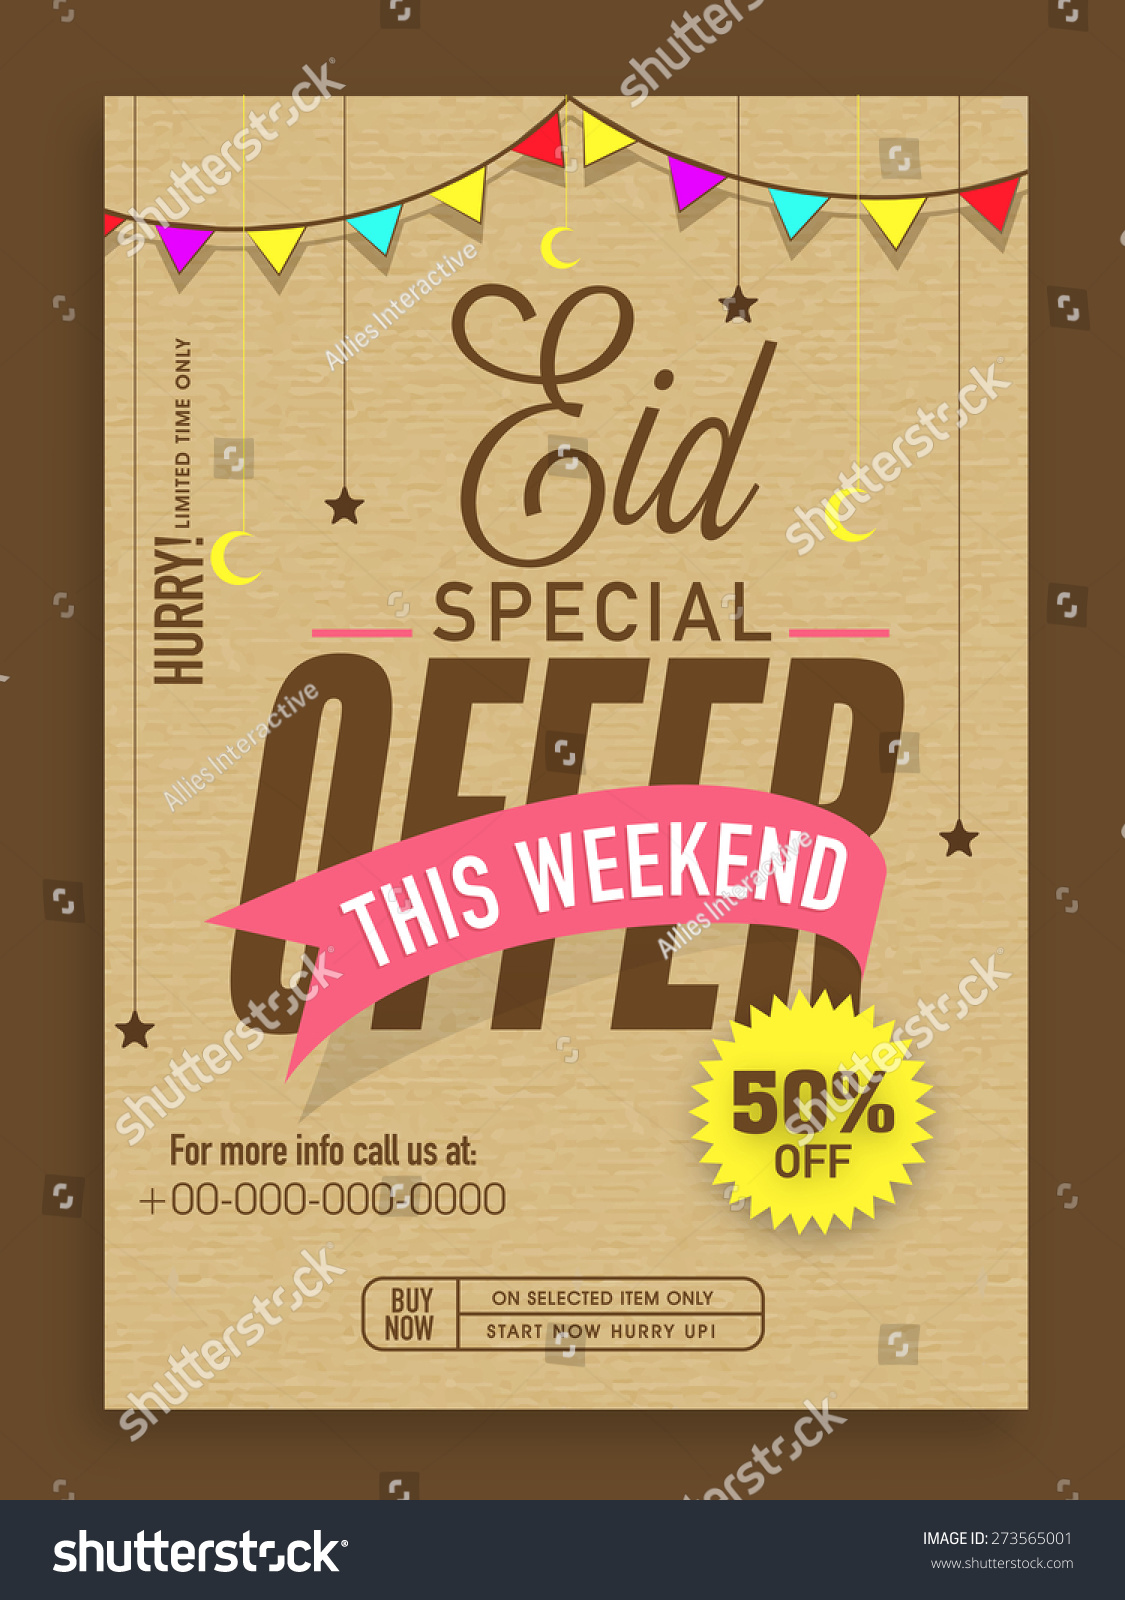 eid special offer template banner flyer stock vector  eid special offer template banner or flyer design decorated colorful bunting moons